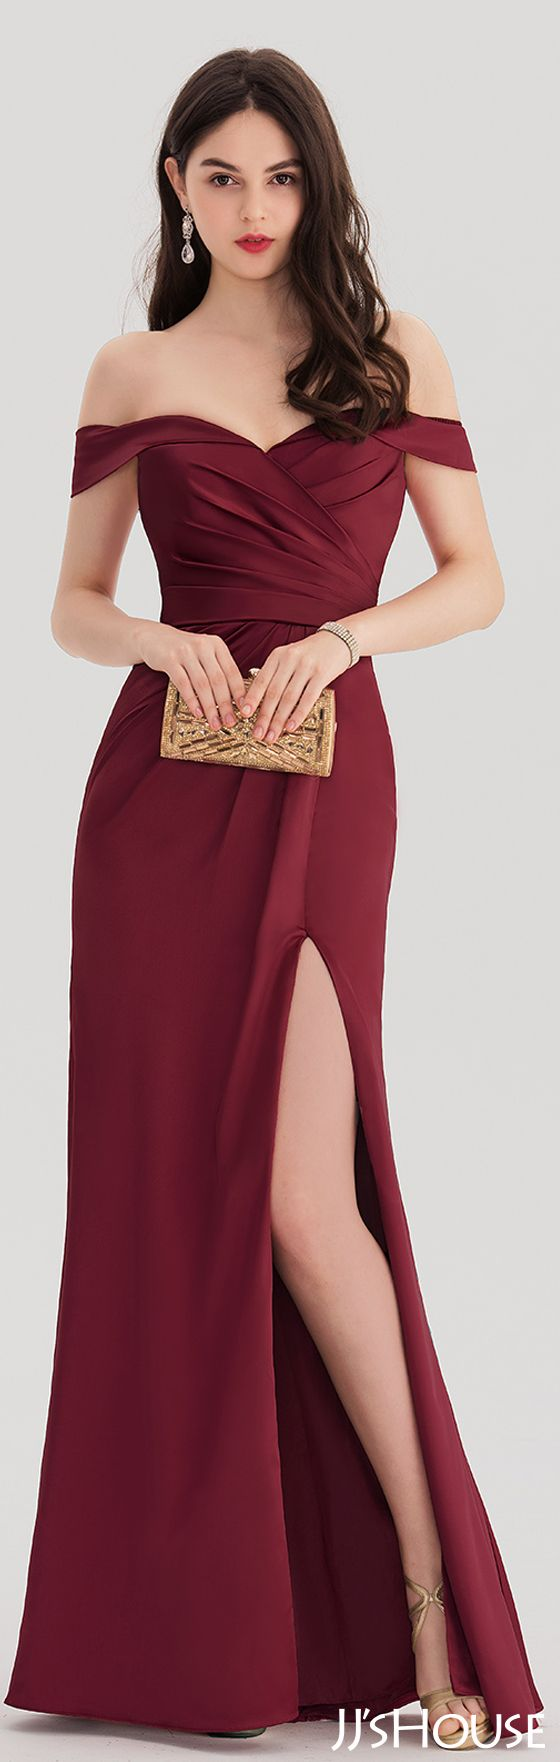 Sheathcolumn offtheshoulder floorlength satin prom dresses with